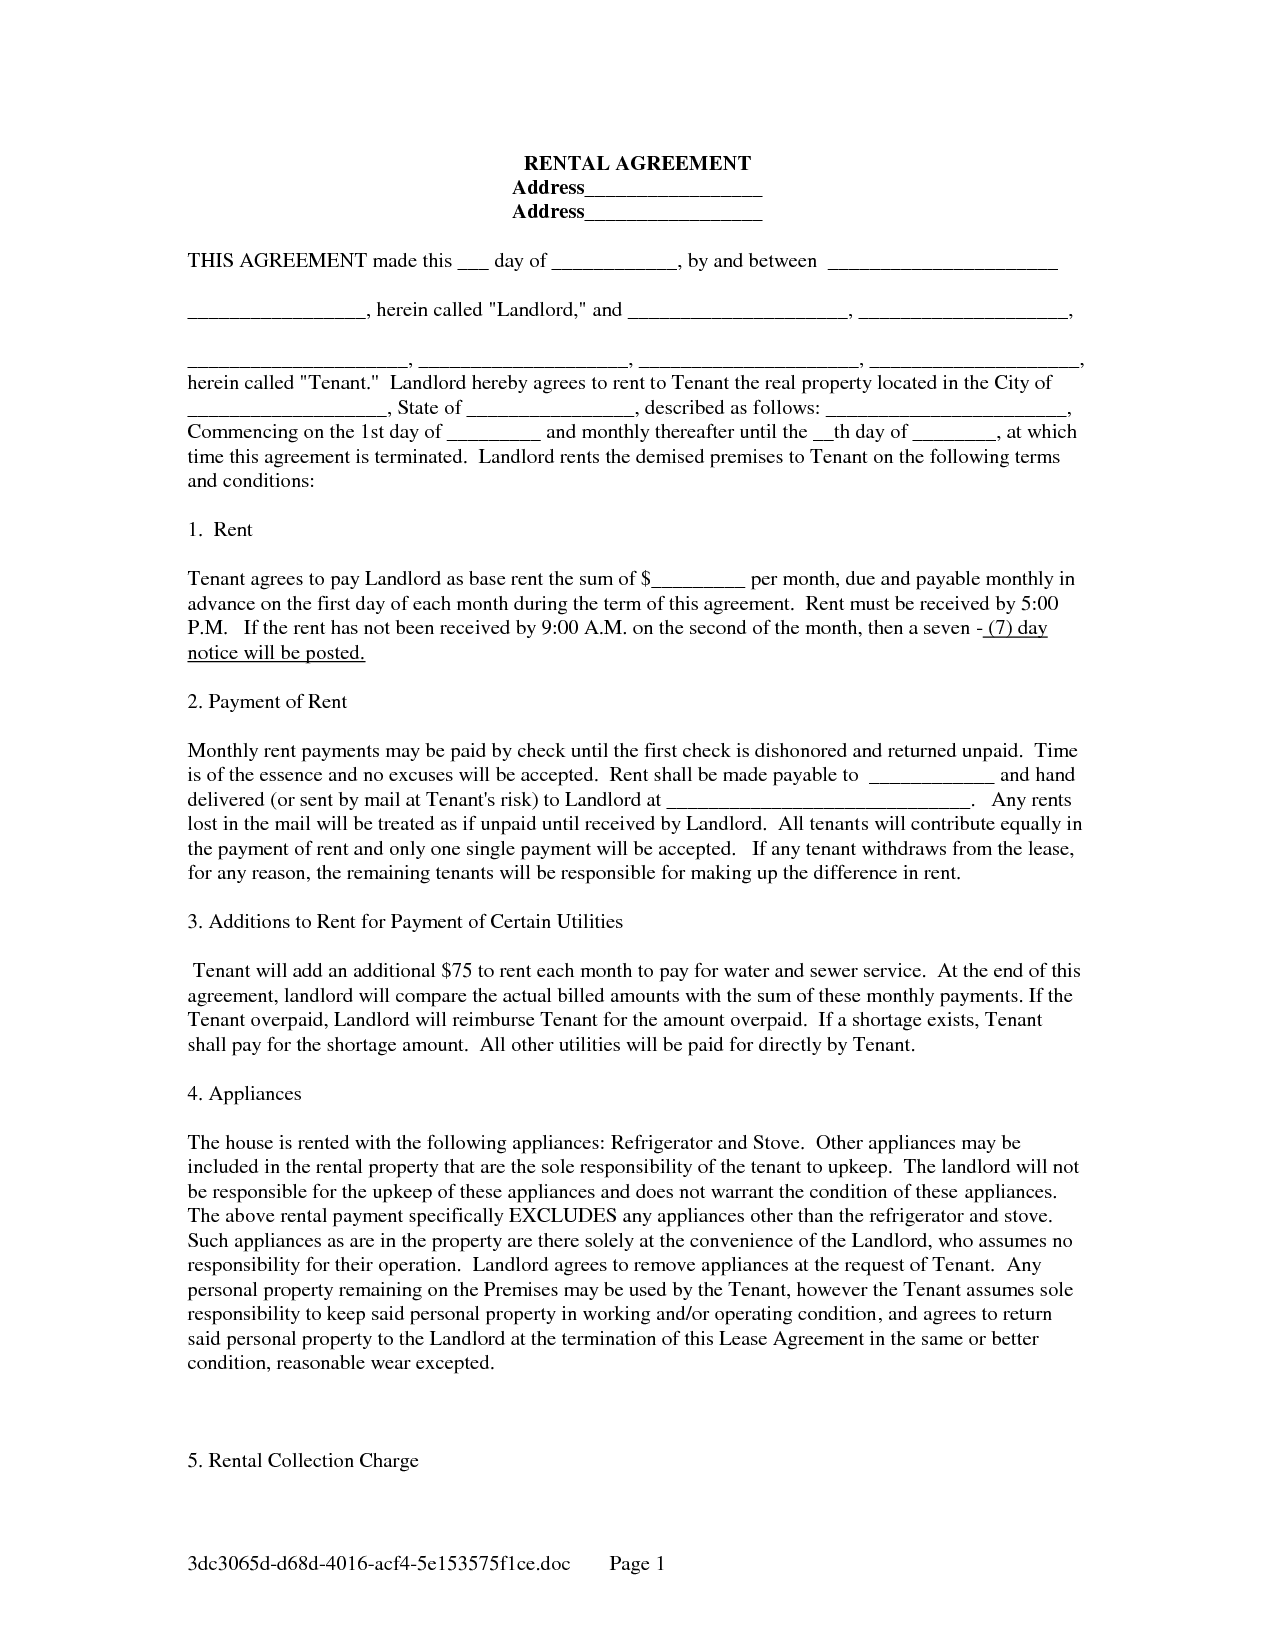 Free Printable Rental Agreement Forms Free Printable Documents Lease Agreement Rental Agreement Templates Contract Template